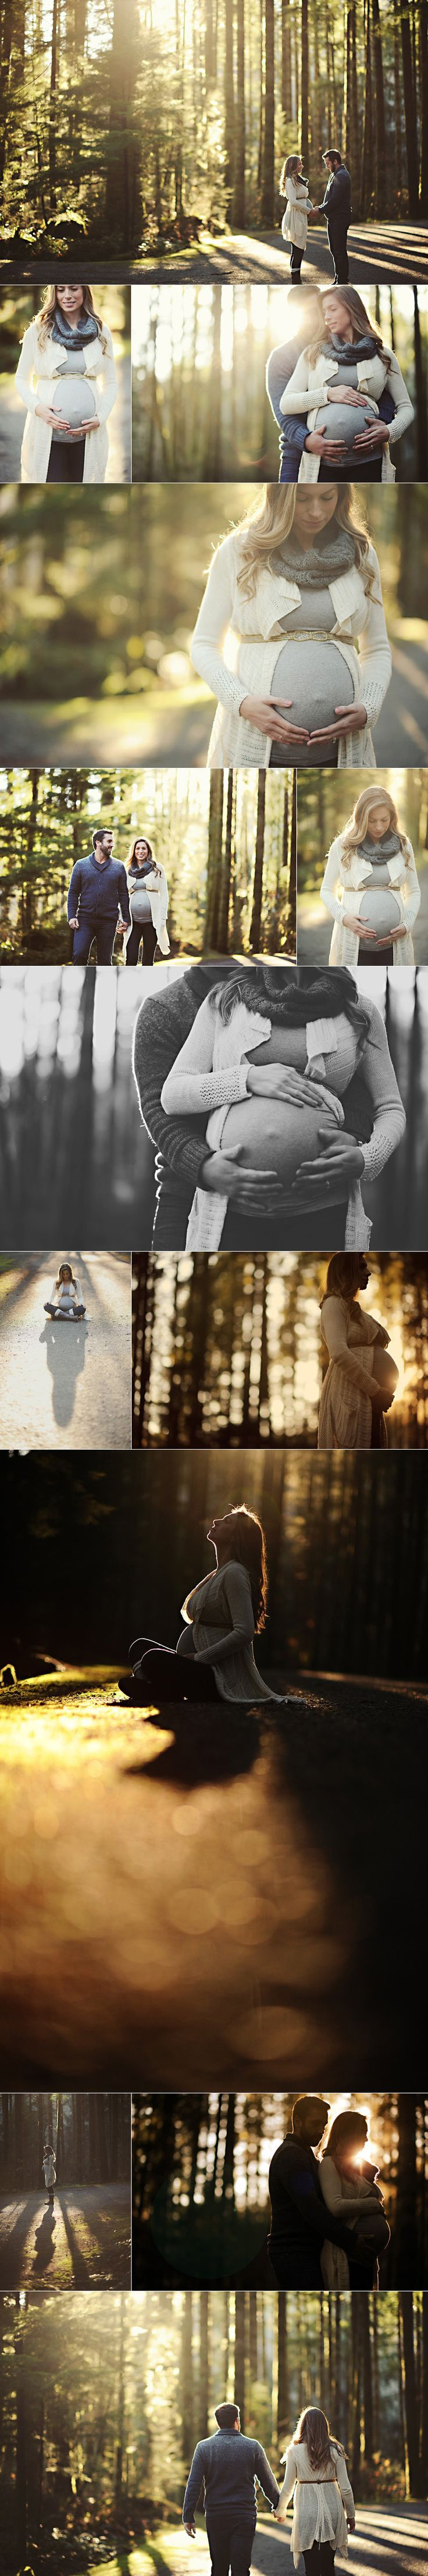 Best Outdoor Maternity Photography